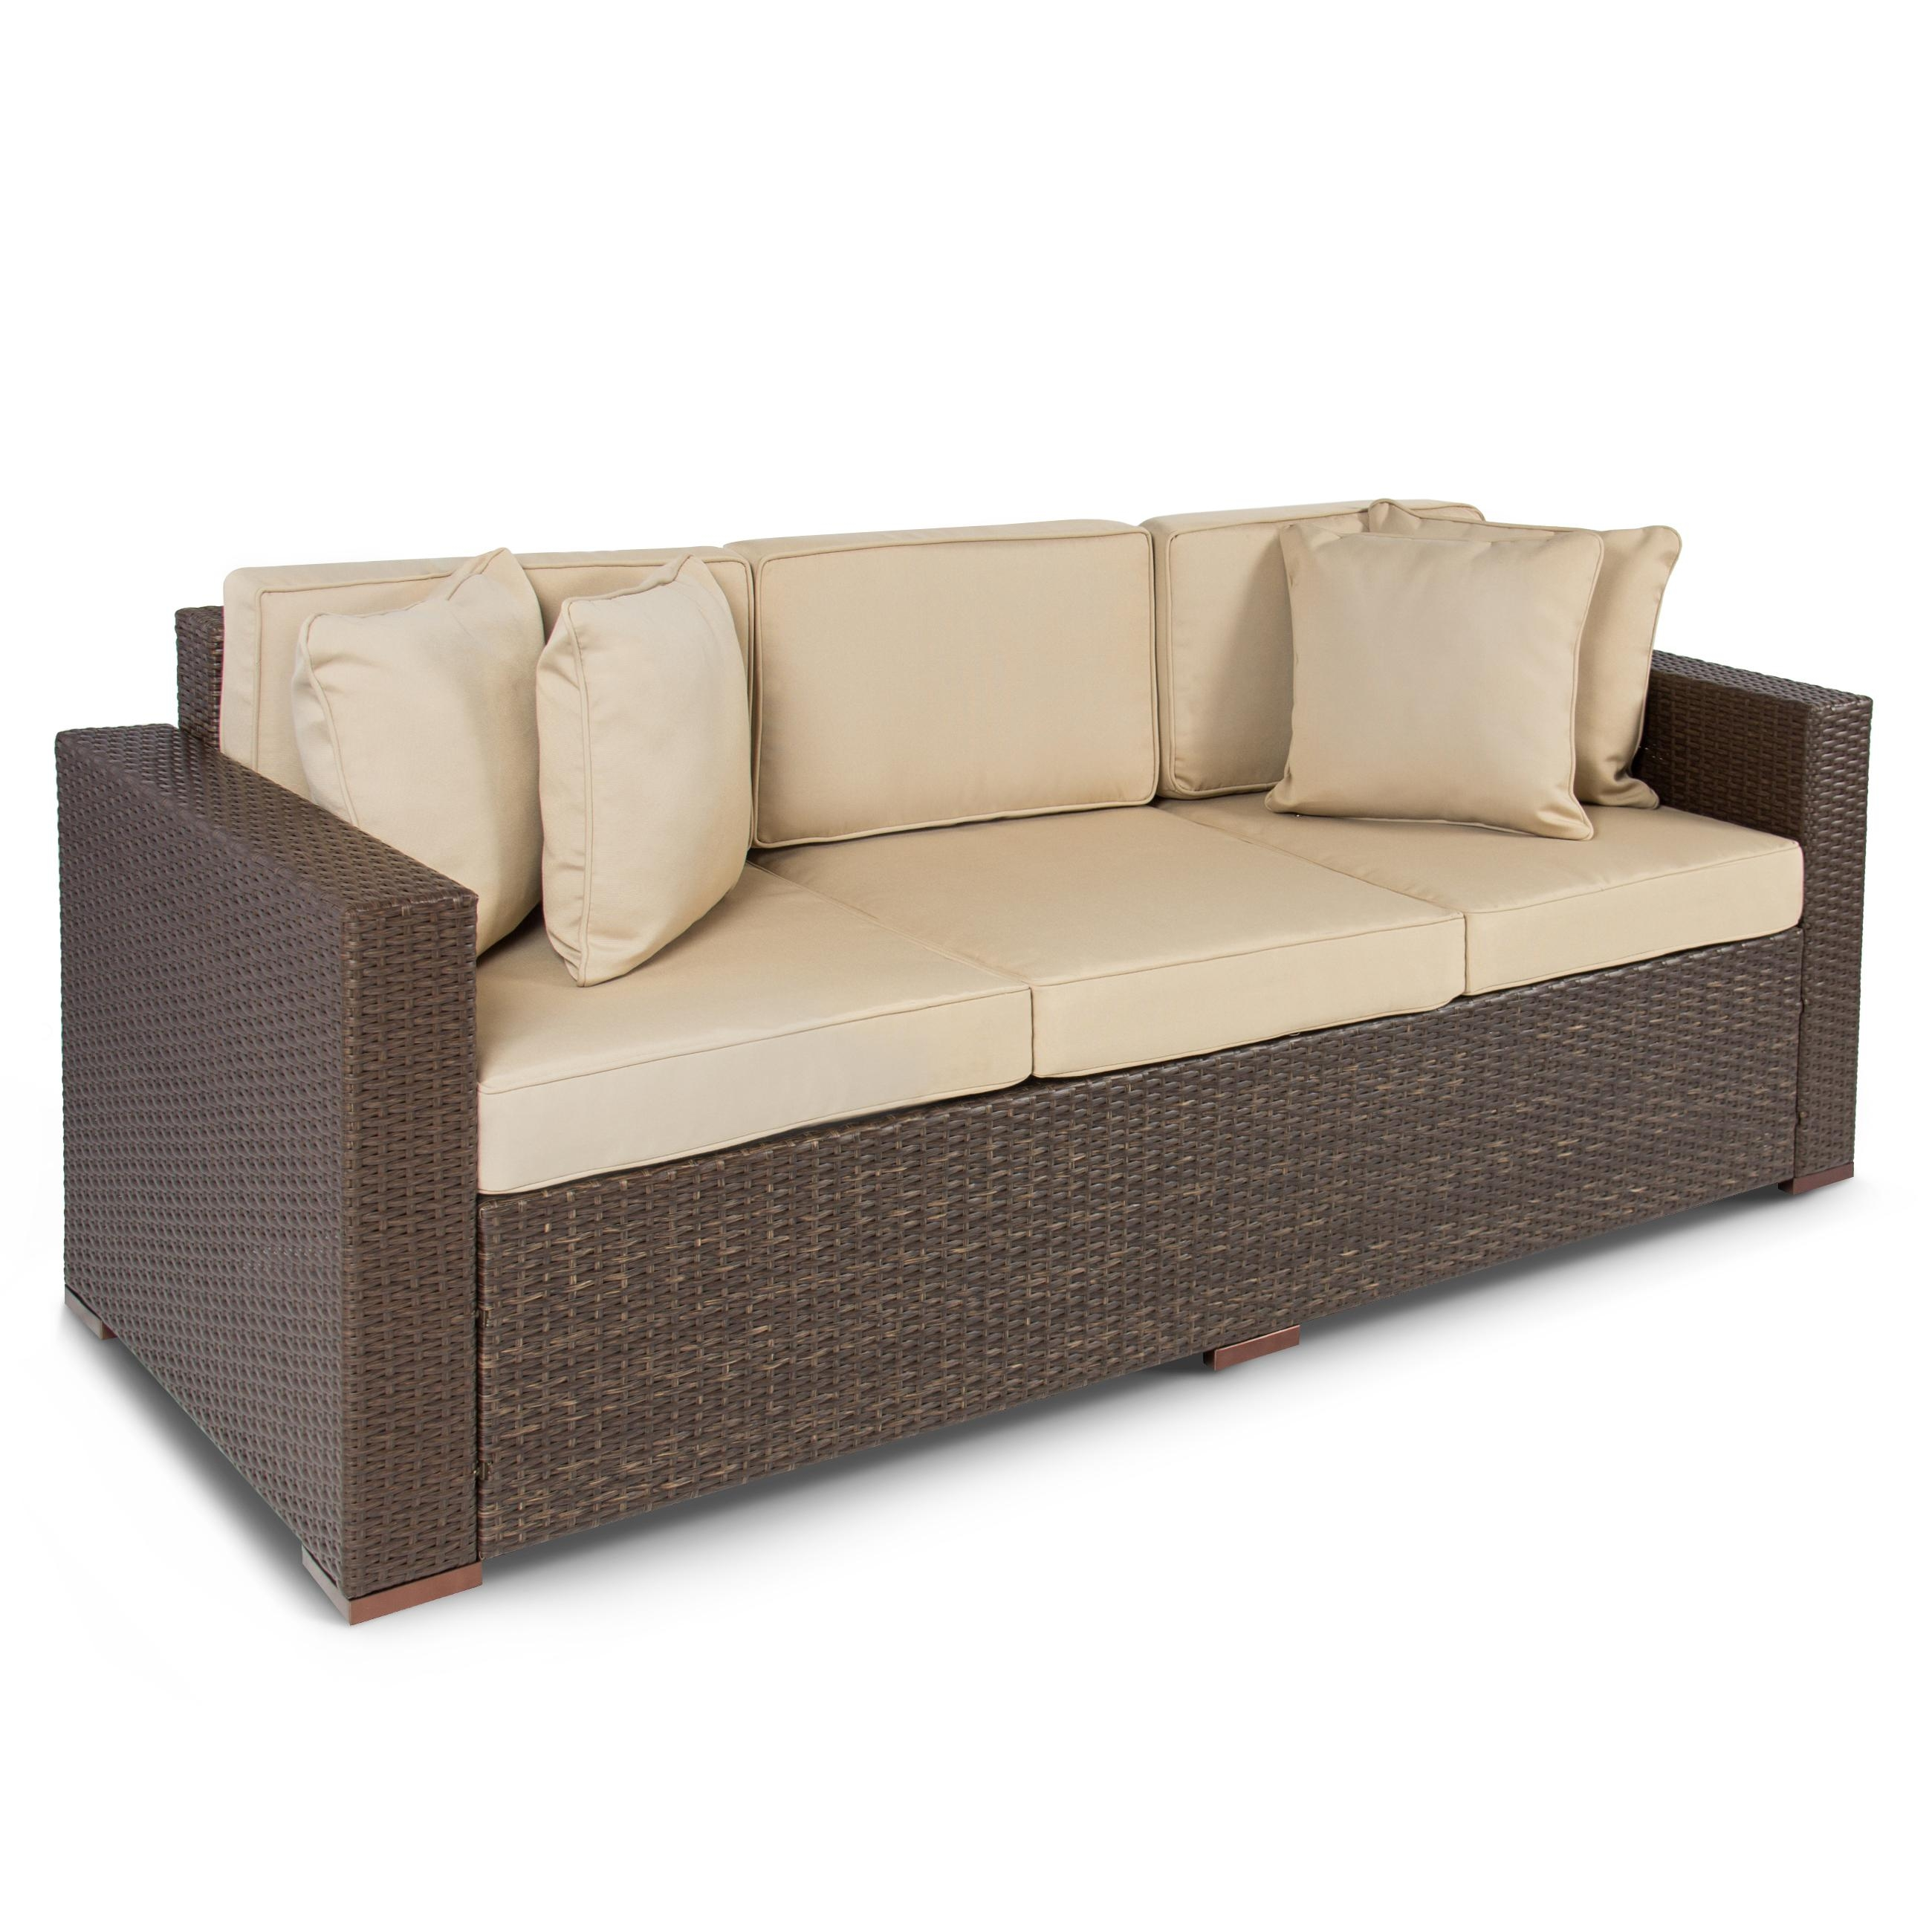 Outdoor Wicker Patio Furniture Sofa 3 Seater Luxury Comfort Brown Regarding Comfortable Sofas And Chairs (Image 11 of 20)